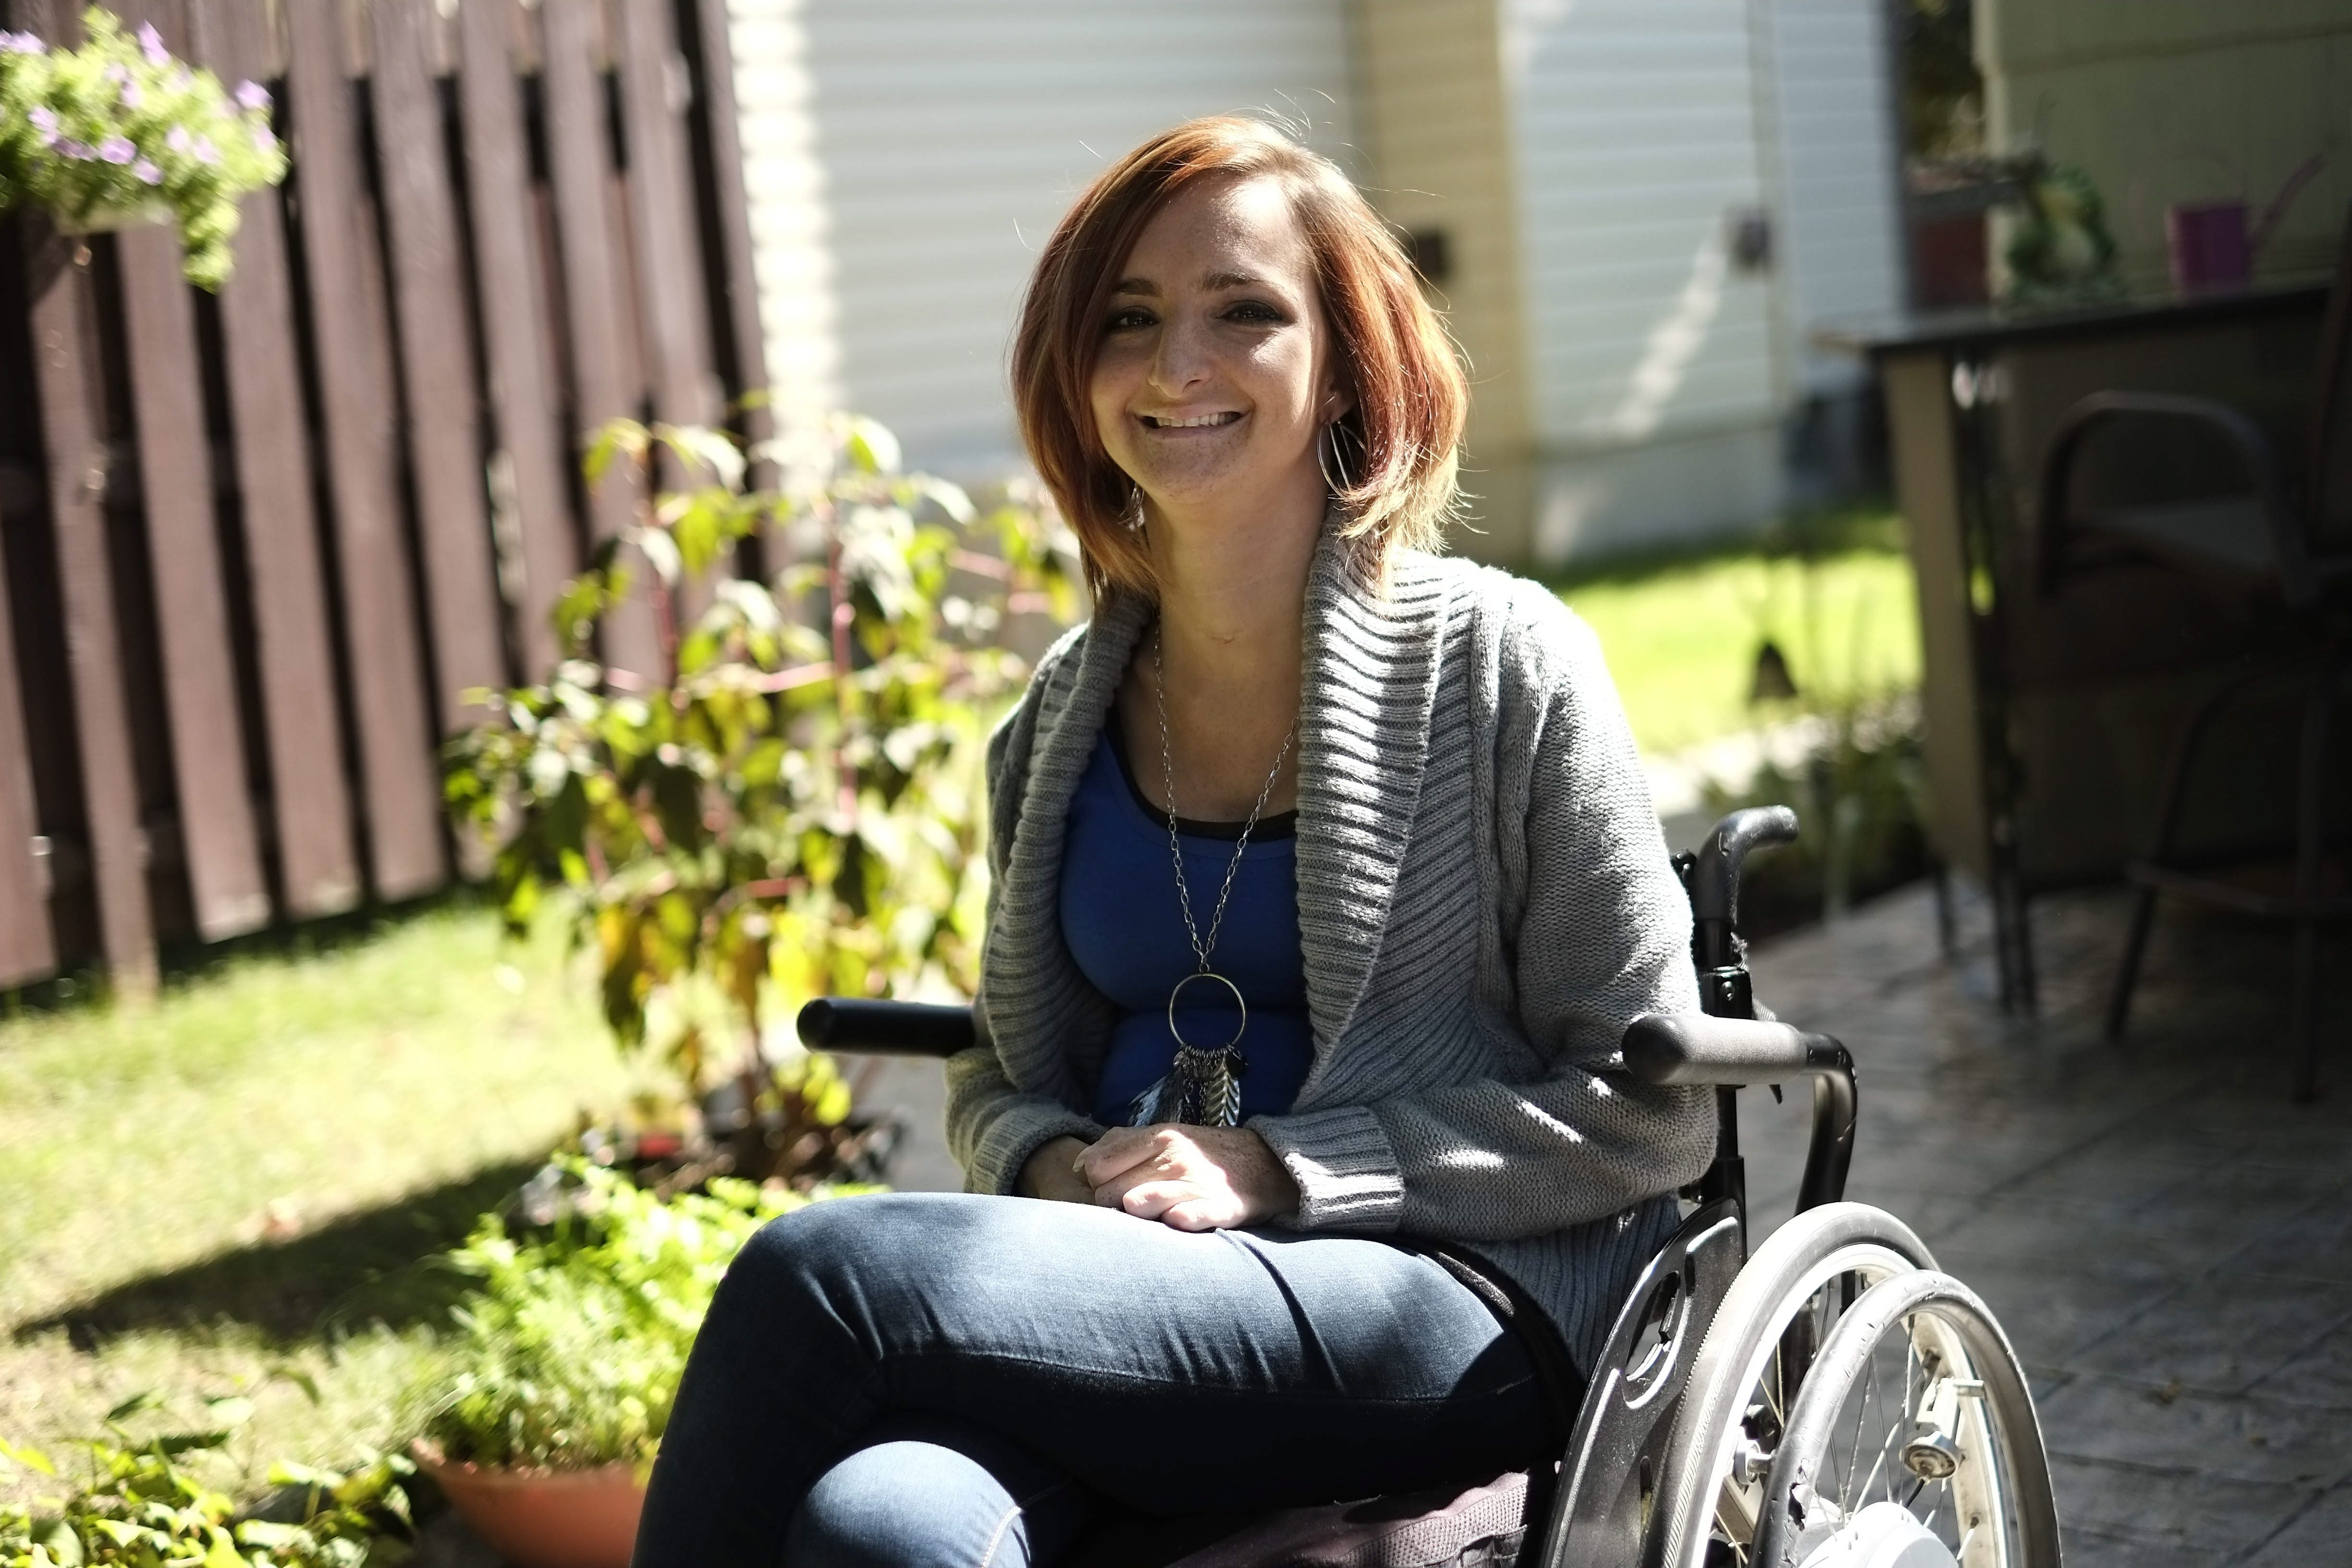 Natalie Barnhard, whose spinal cord was severely injured in 2004, leads Wheels With Wings Foundation to help others who suffer the same. One goal is for a rehabilitation and support center to be built.